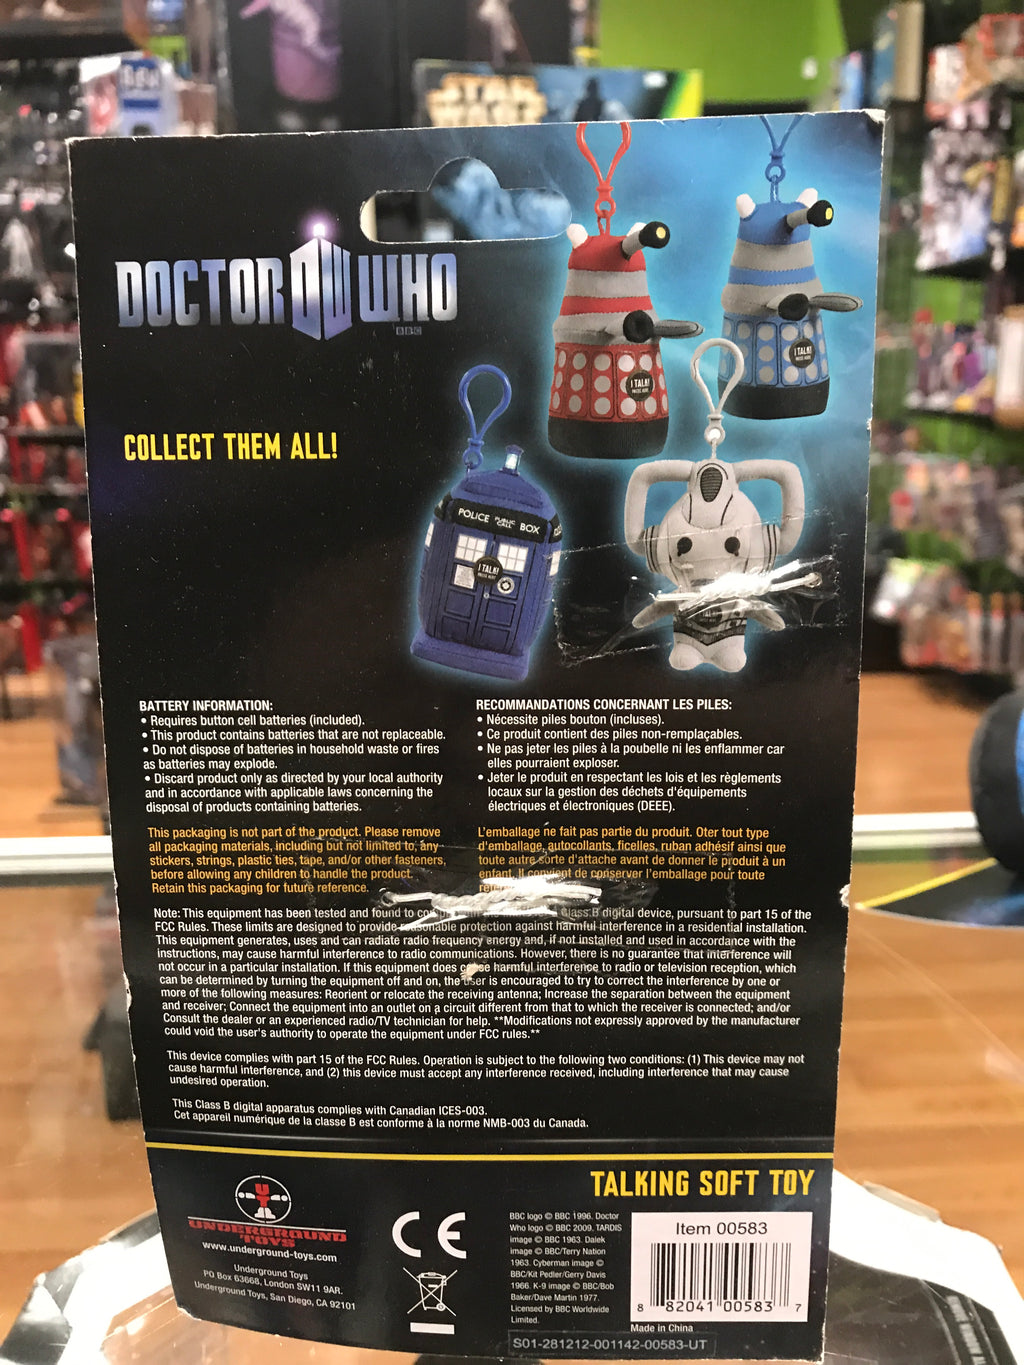 Underground Toys Doctor Who Talking Plush Clip-On Dalek